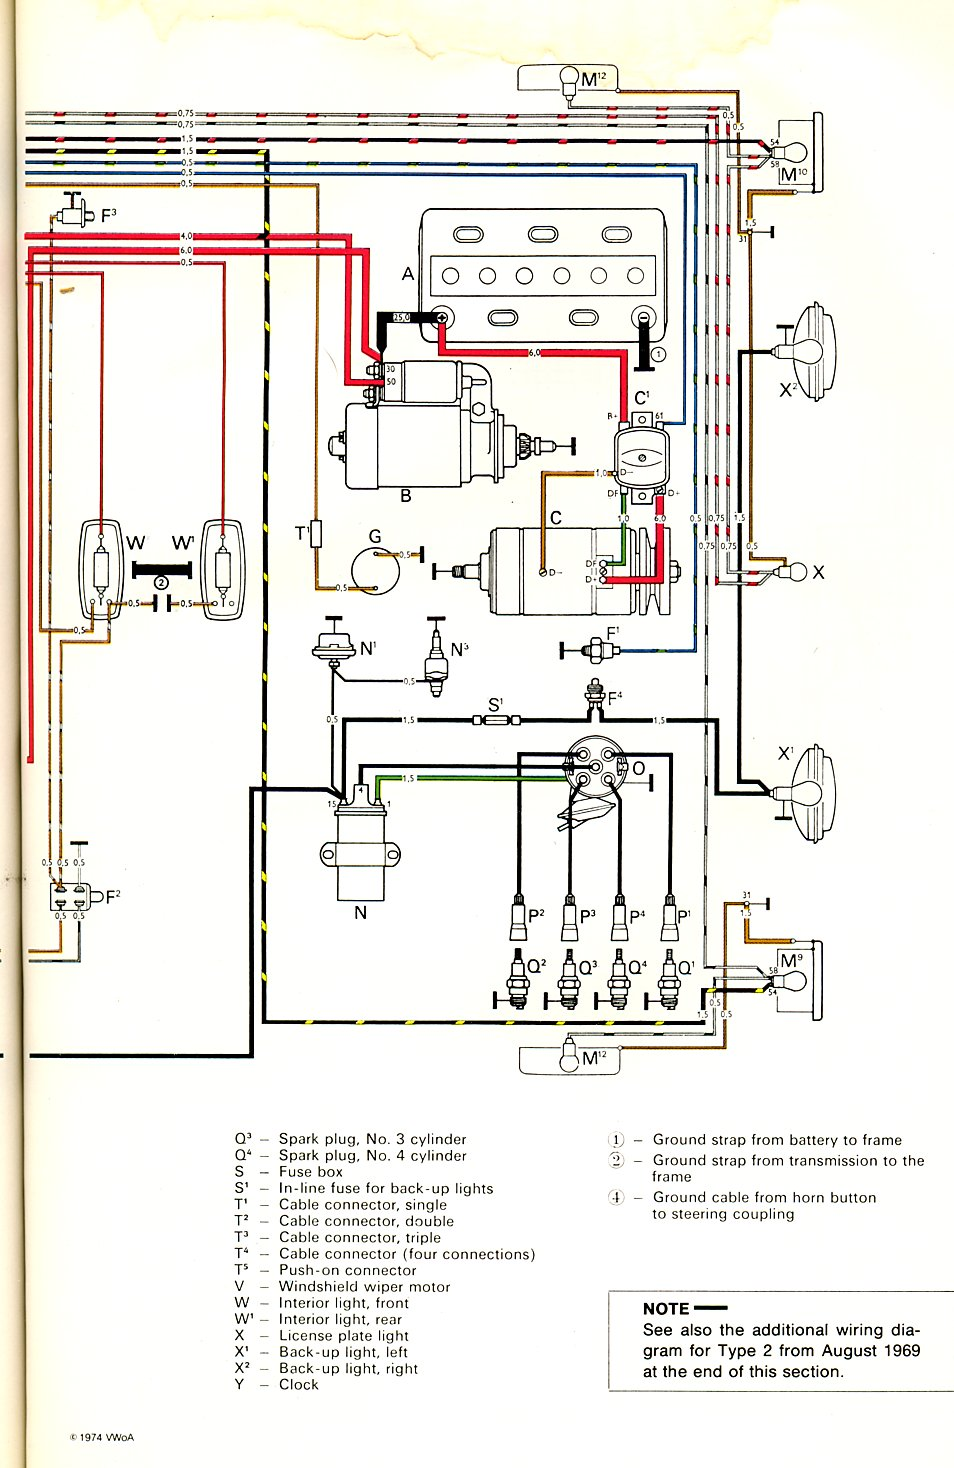 hight resolution of vw pick up fuse diagram wiring library rh 73 codingcommunity de vw 1600 engine wiring diagram